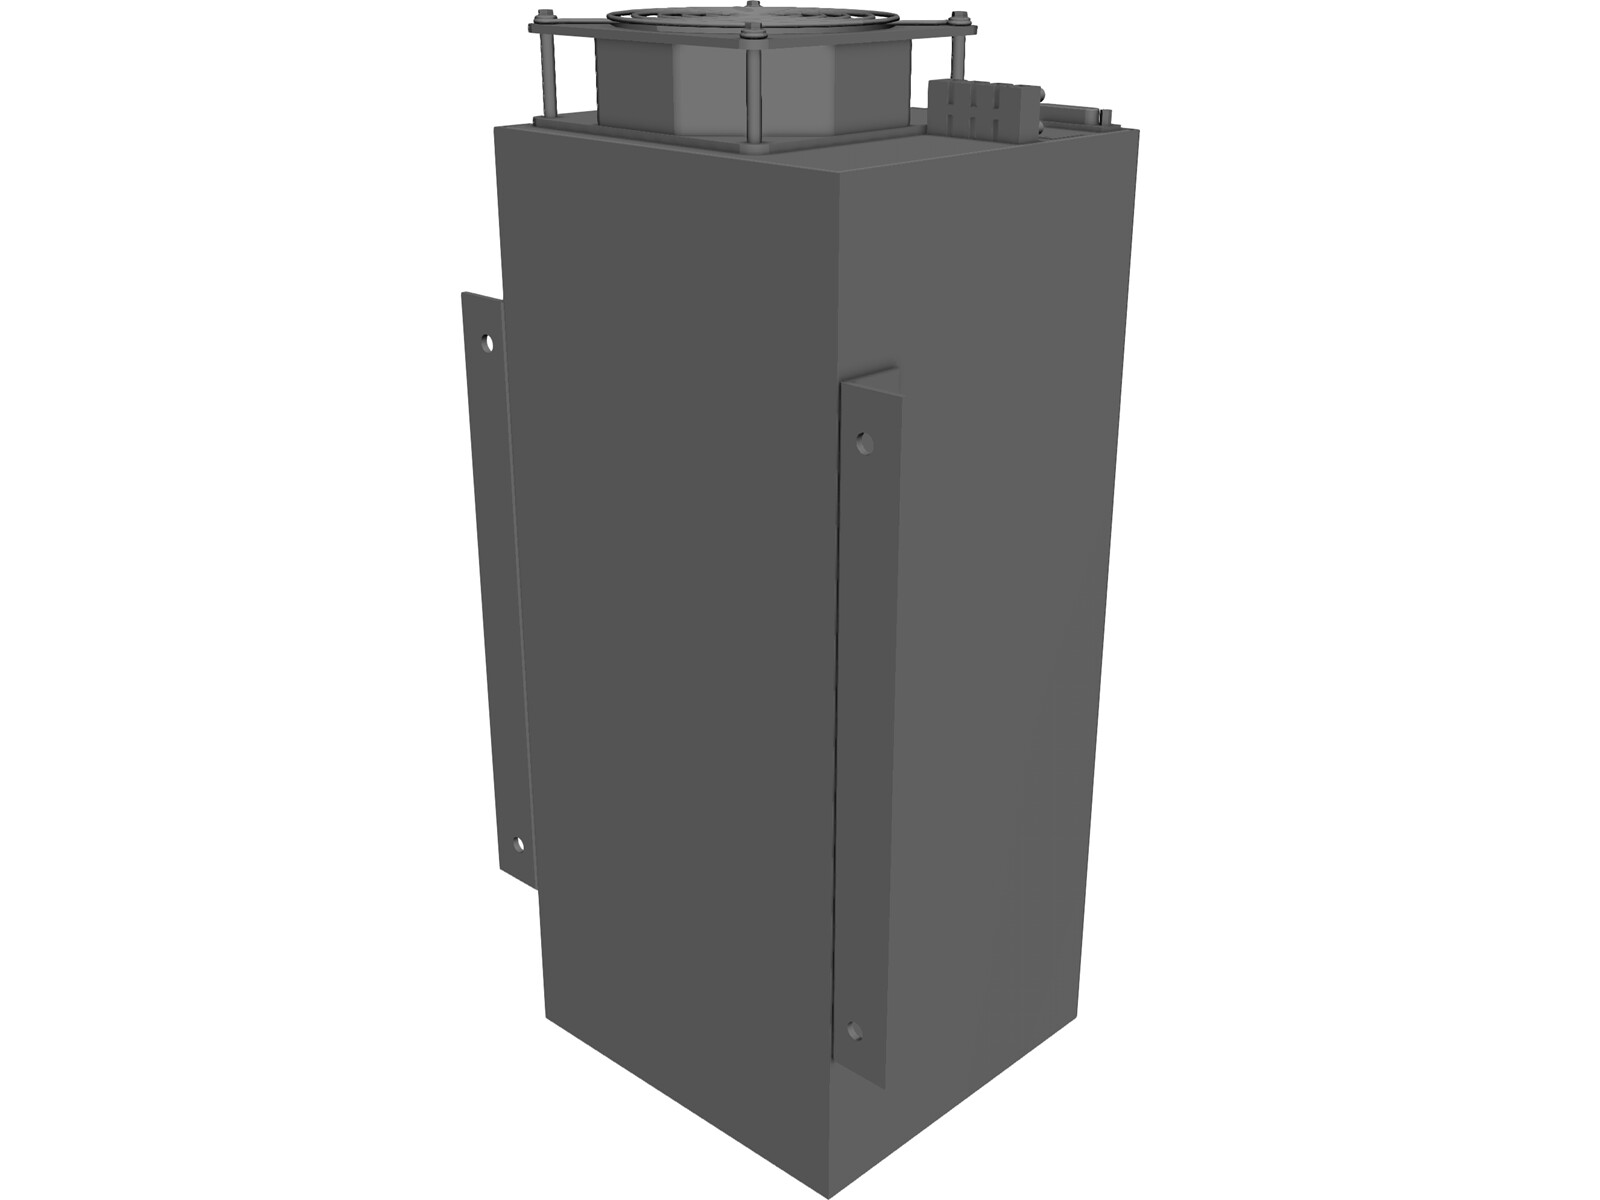 Lambda power supply 3D CAD Model